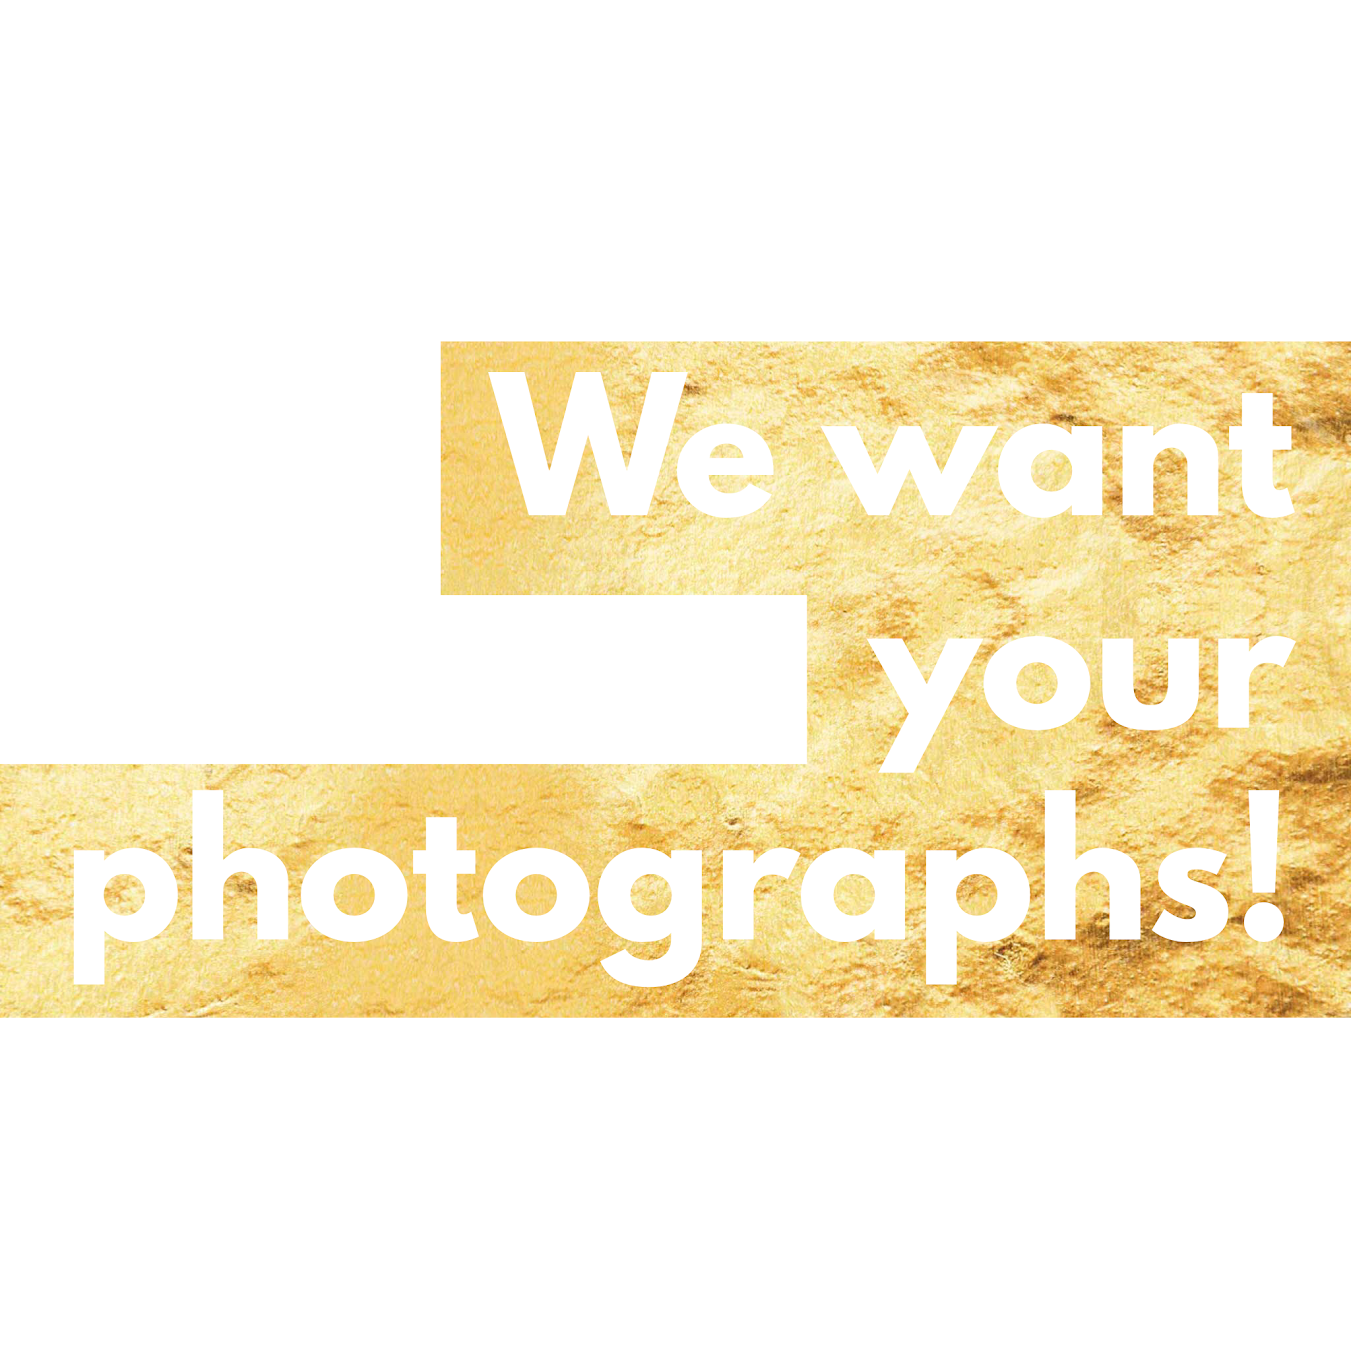 COMing soon - Photographer friends, brides, vendors, etc. we are working on a pretty bad ass look book that may even go into print (hint, hint) so please send us any images you would like featured.Please send all images to info@larissalakeandco.com